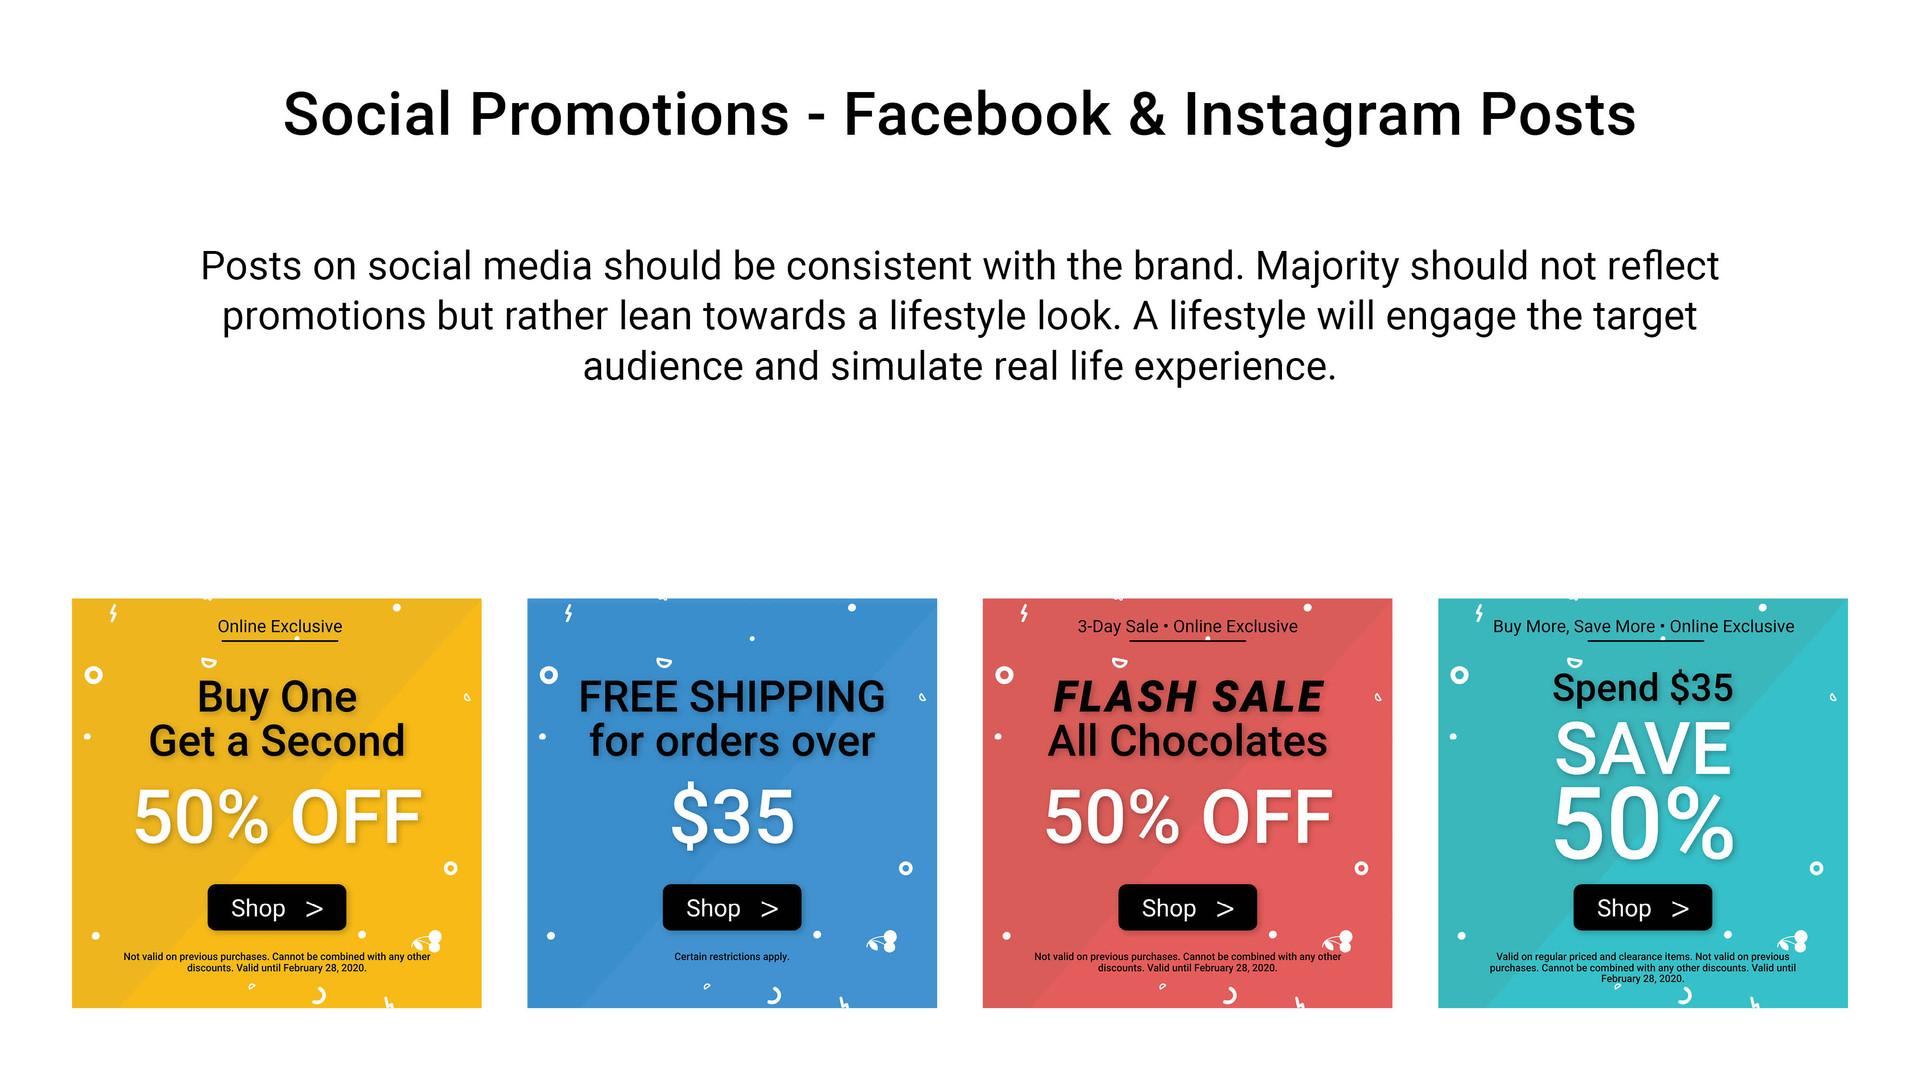 Social Promotions